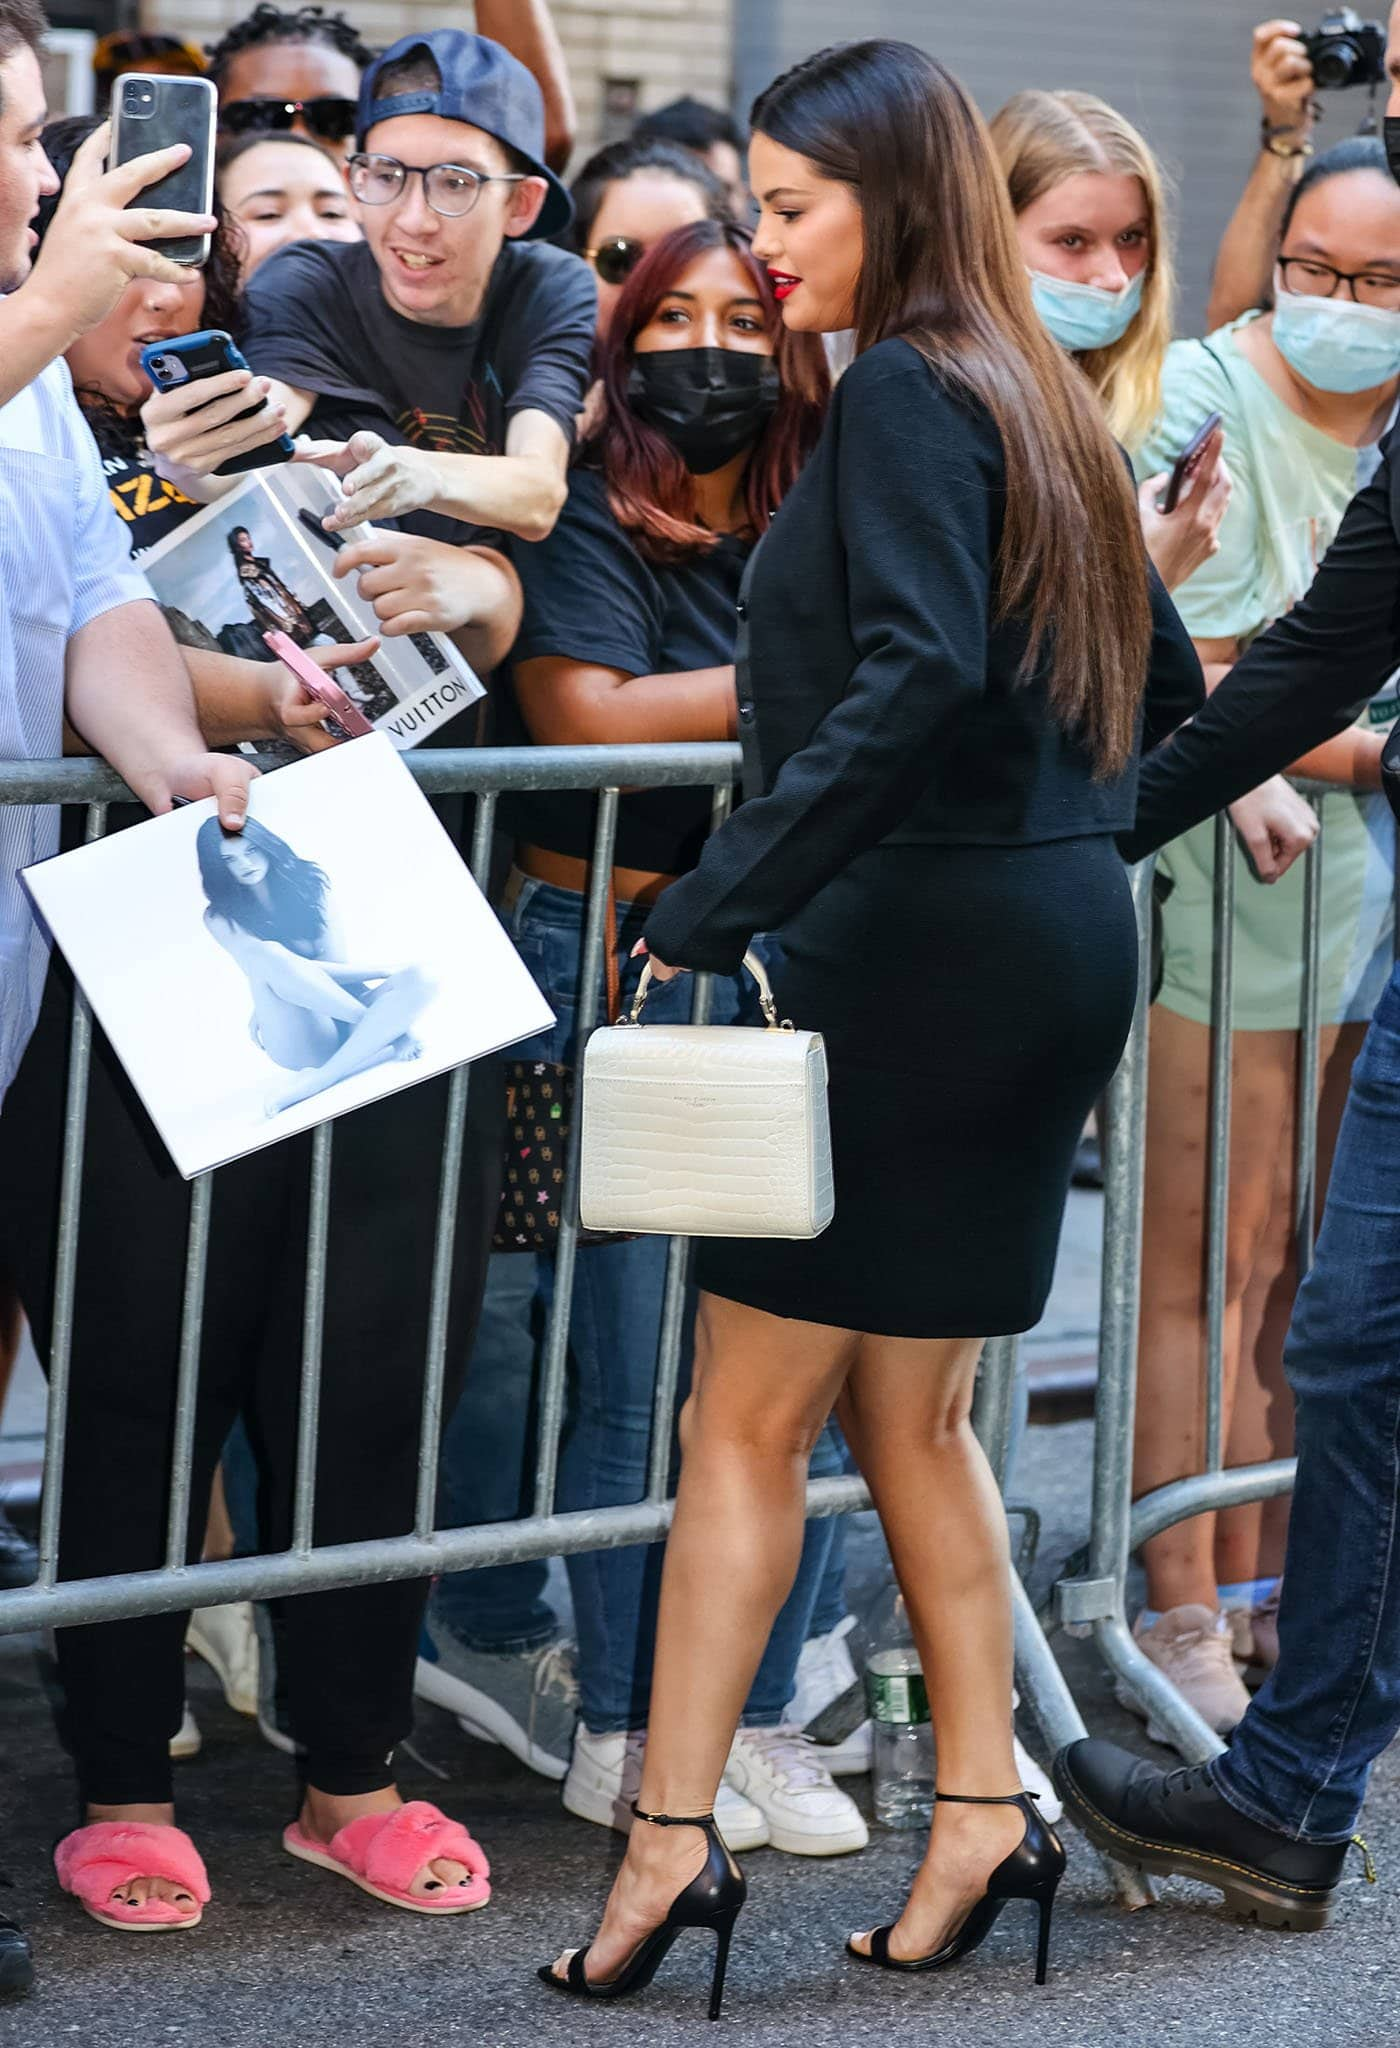 Selena Gomez is seen greeting her fans and signing autographs outside the Ed Sullivan Theater